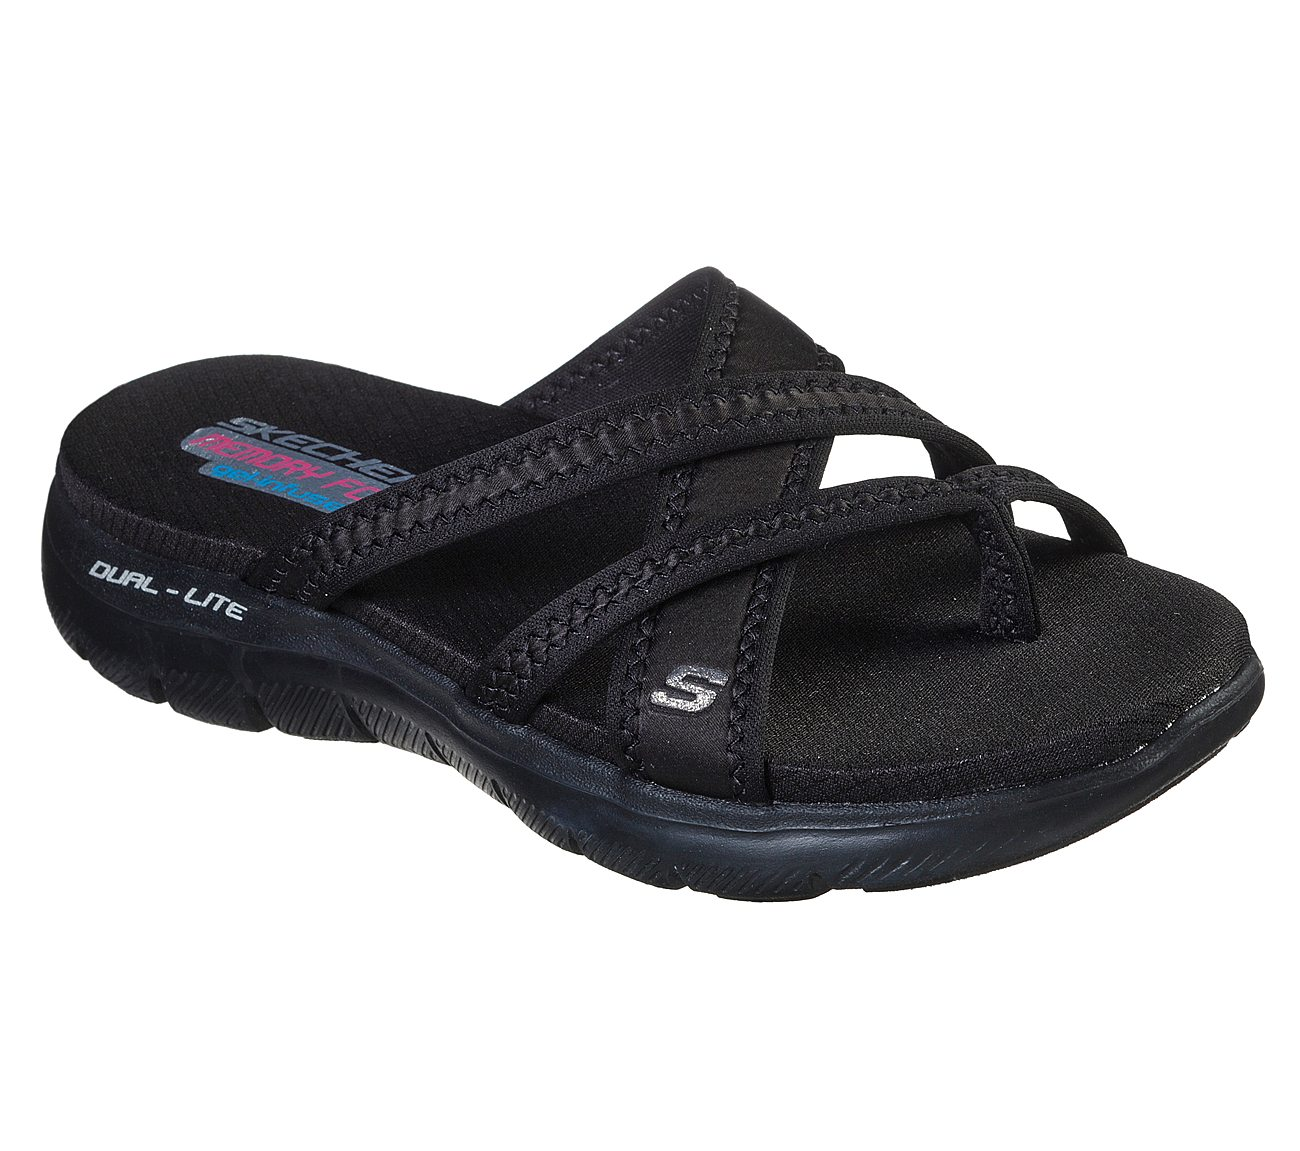 472d2a397e39 Buy SKECHERS Flex Appeal 2.0 - Start Up Cali Shoes only  35.00